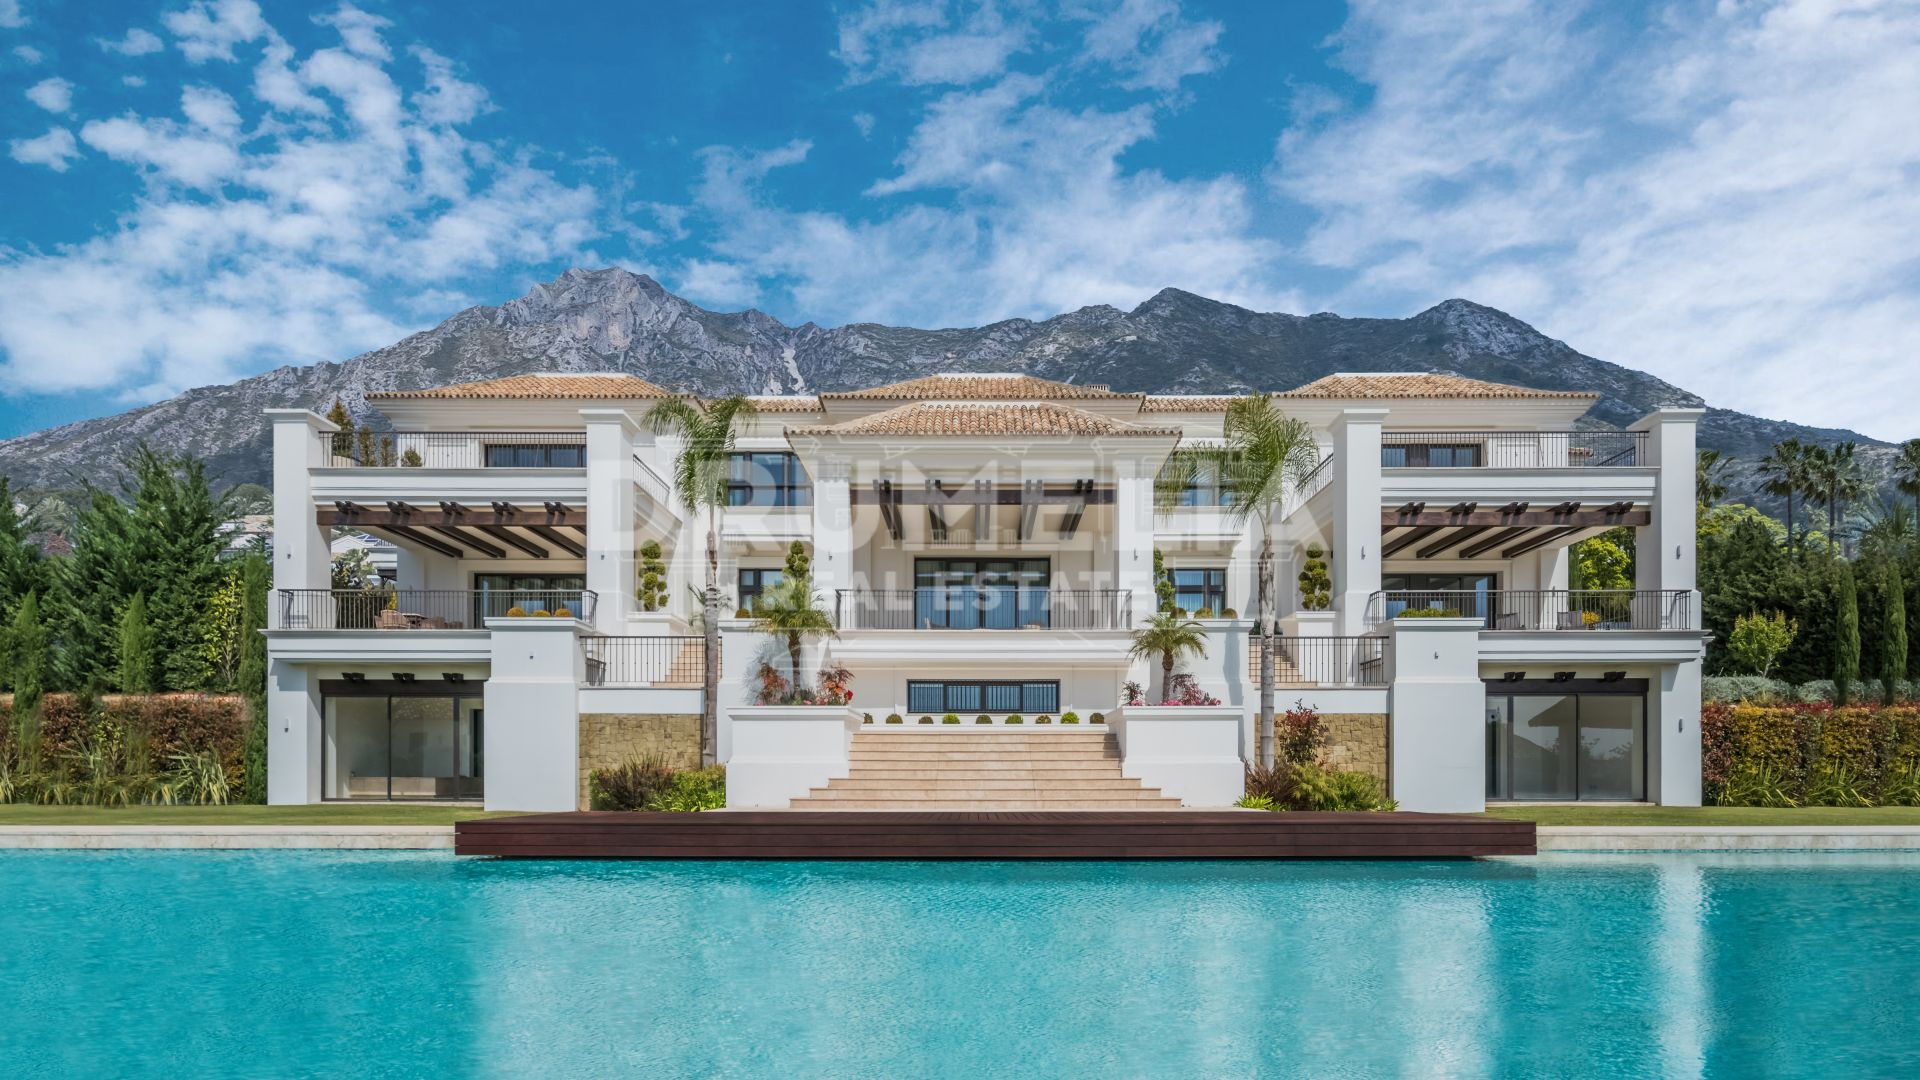 Marbella Golden Mile, New Magnificent and Stylish Luxury Modern Mediterranean Villa, Sierra Blanca, Marbella.